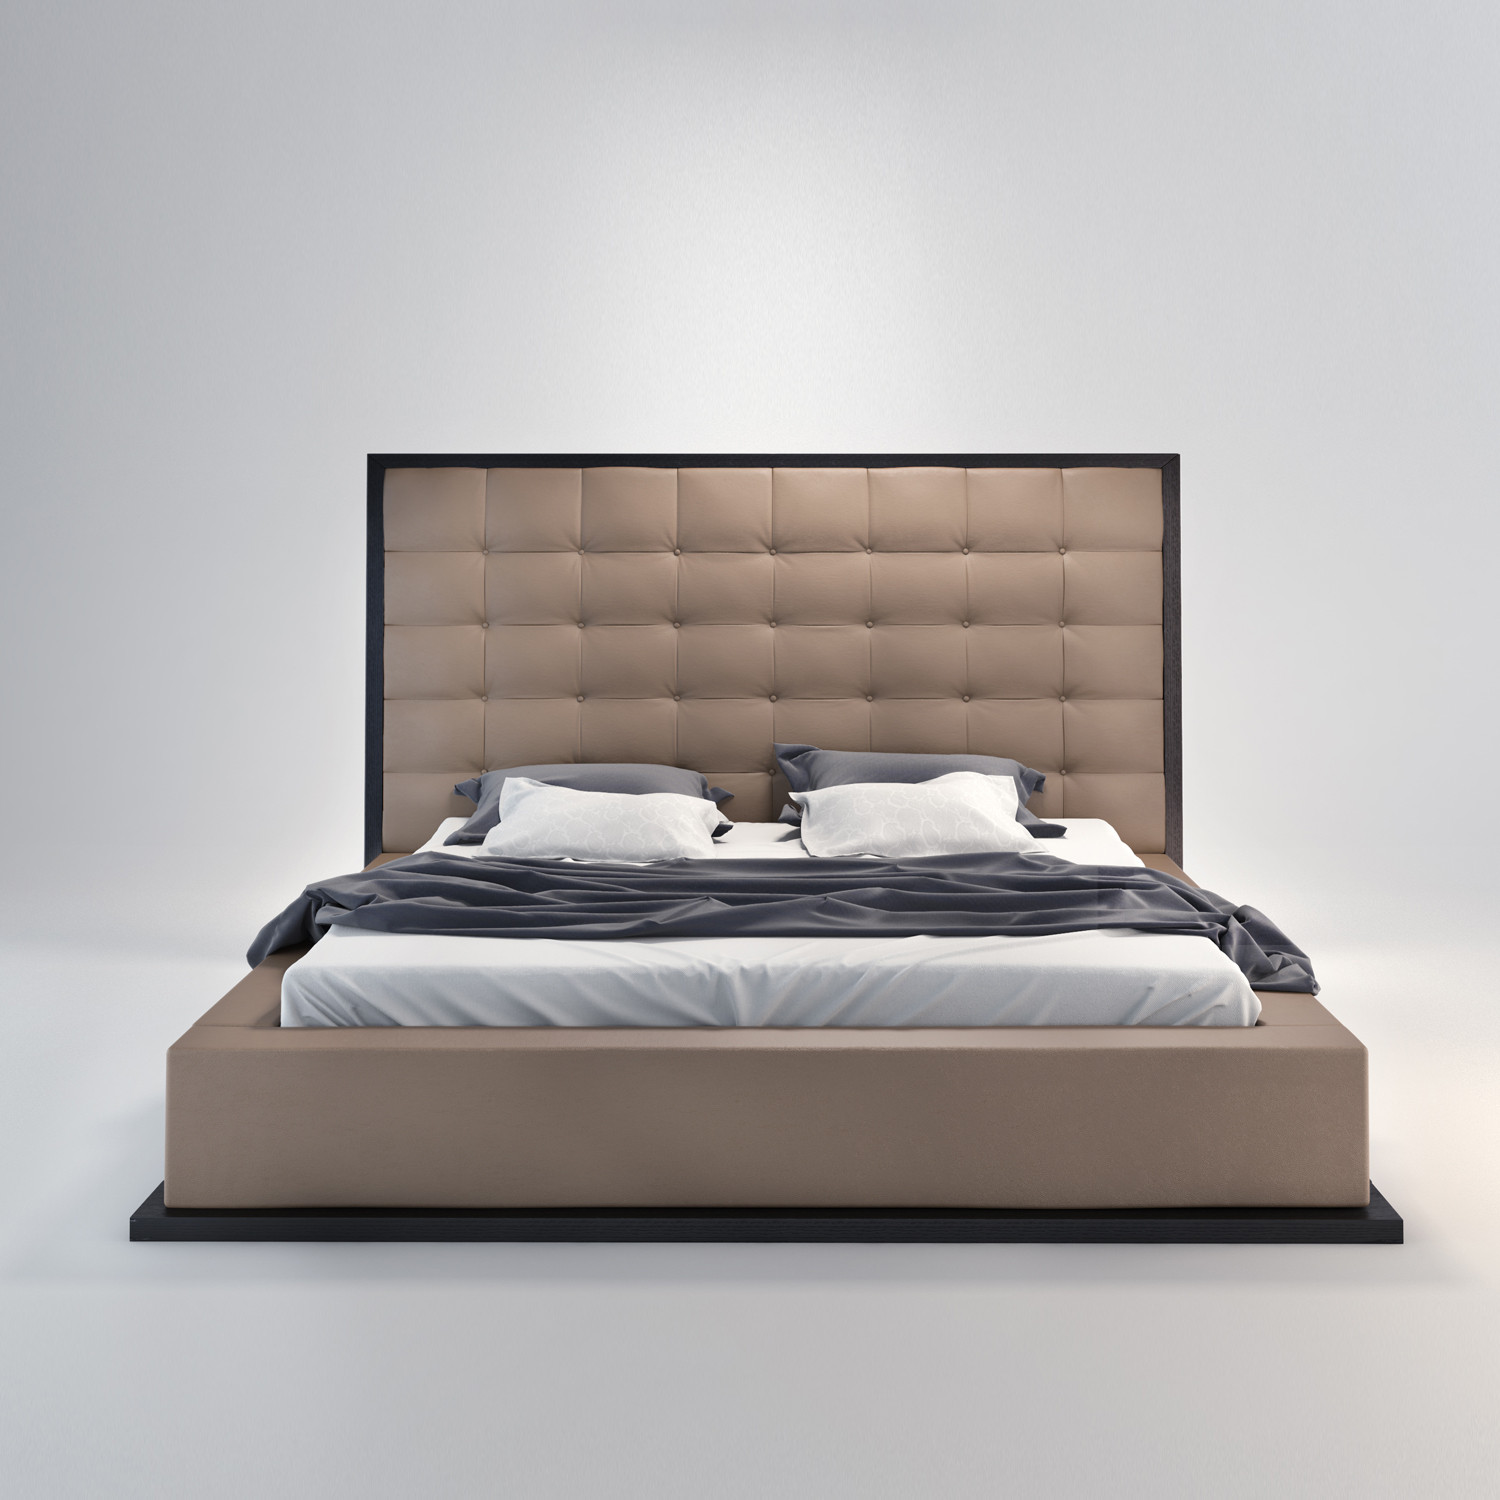 ludlow bed in wenge  taupe (queen l x w x h)  modloft  - ludlow bed in wenge  taupe (queen l x